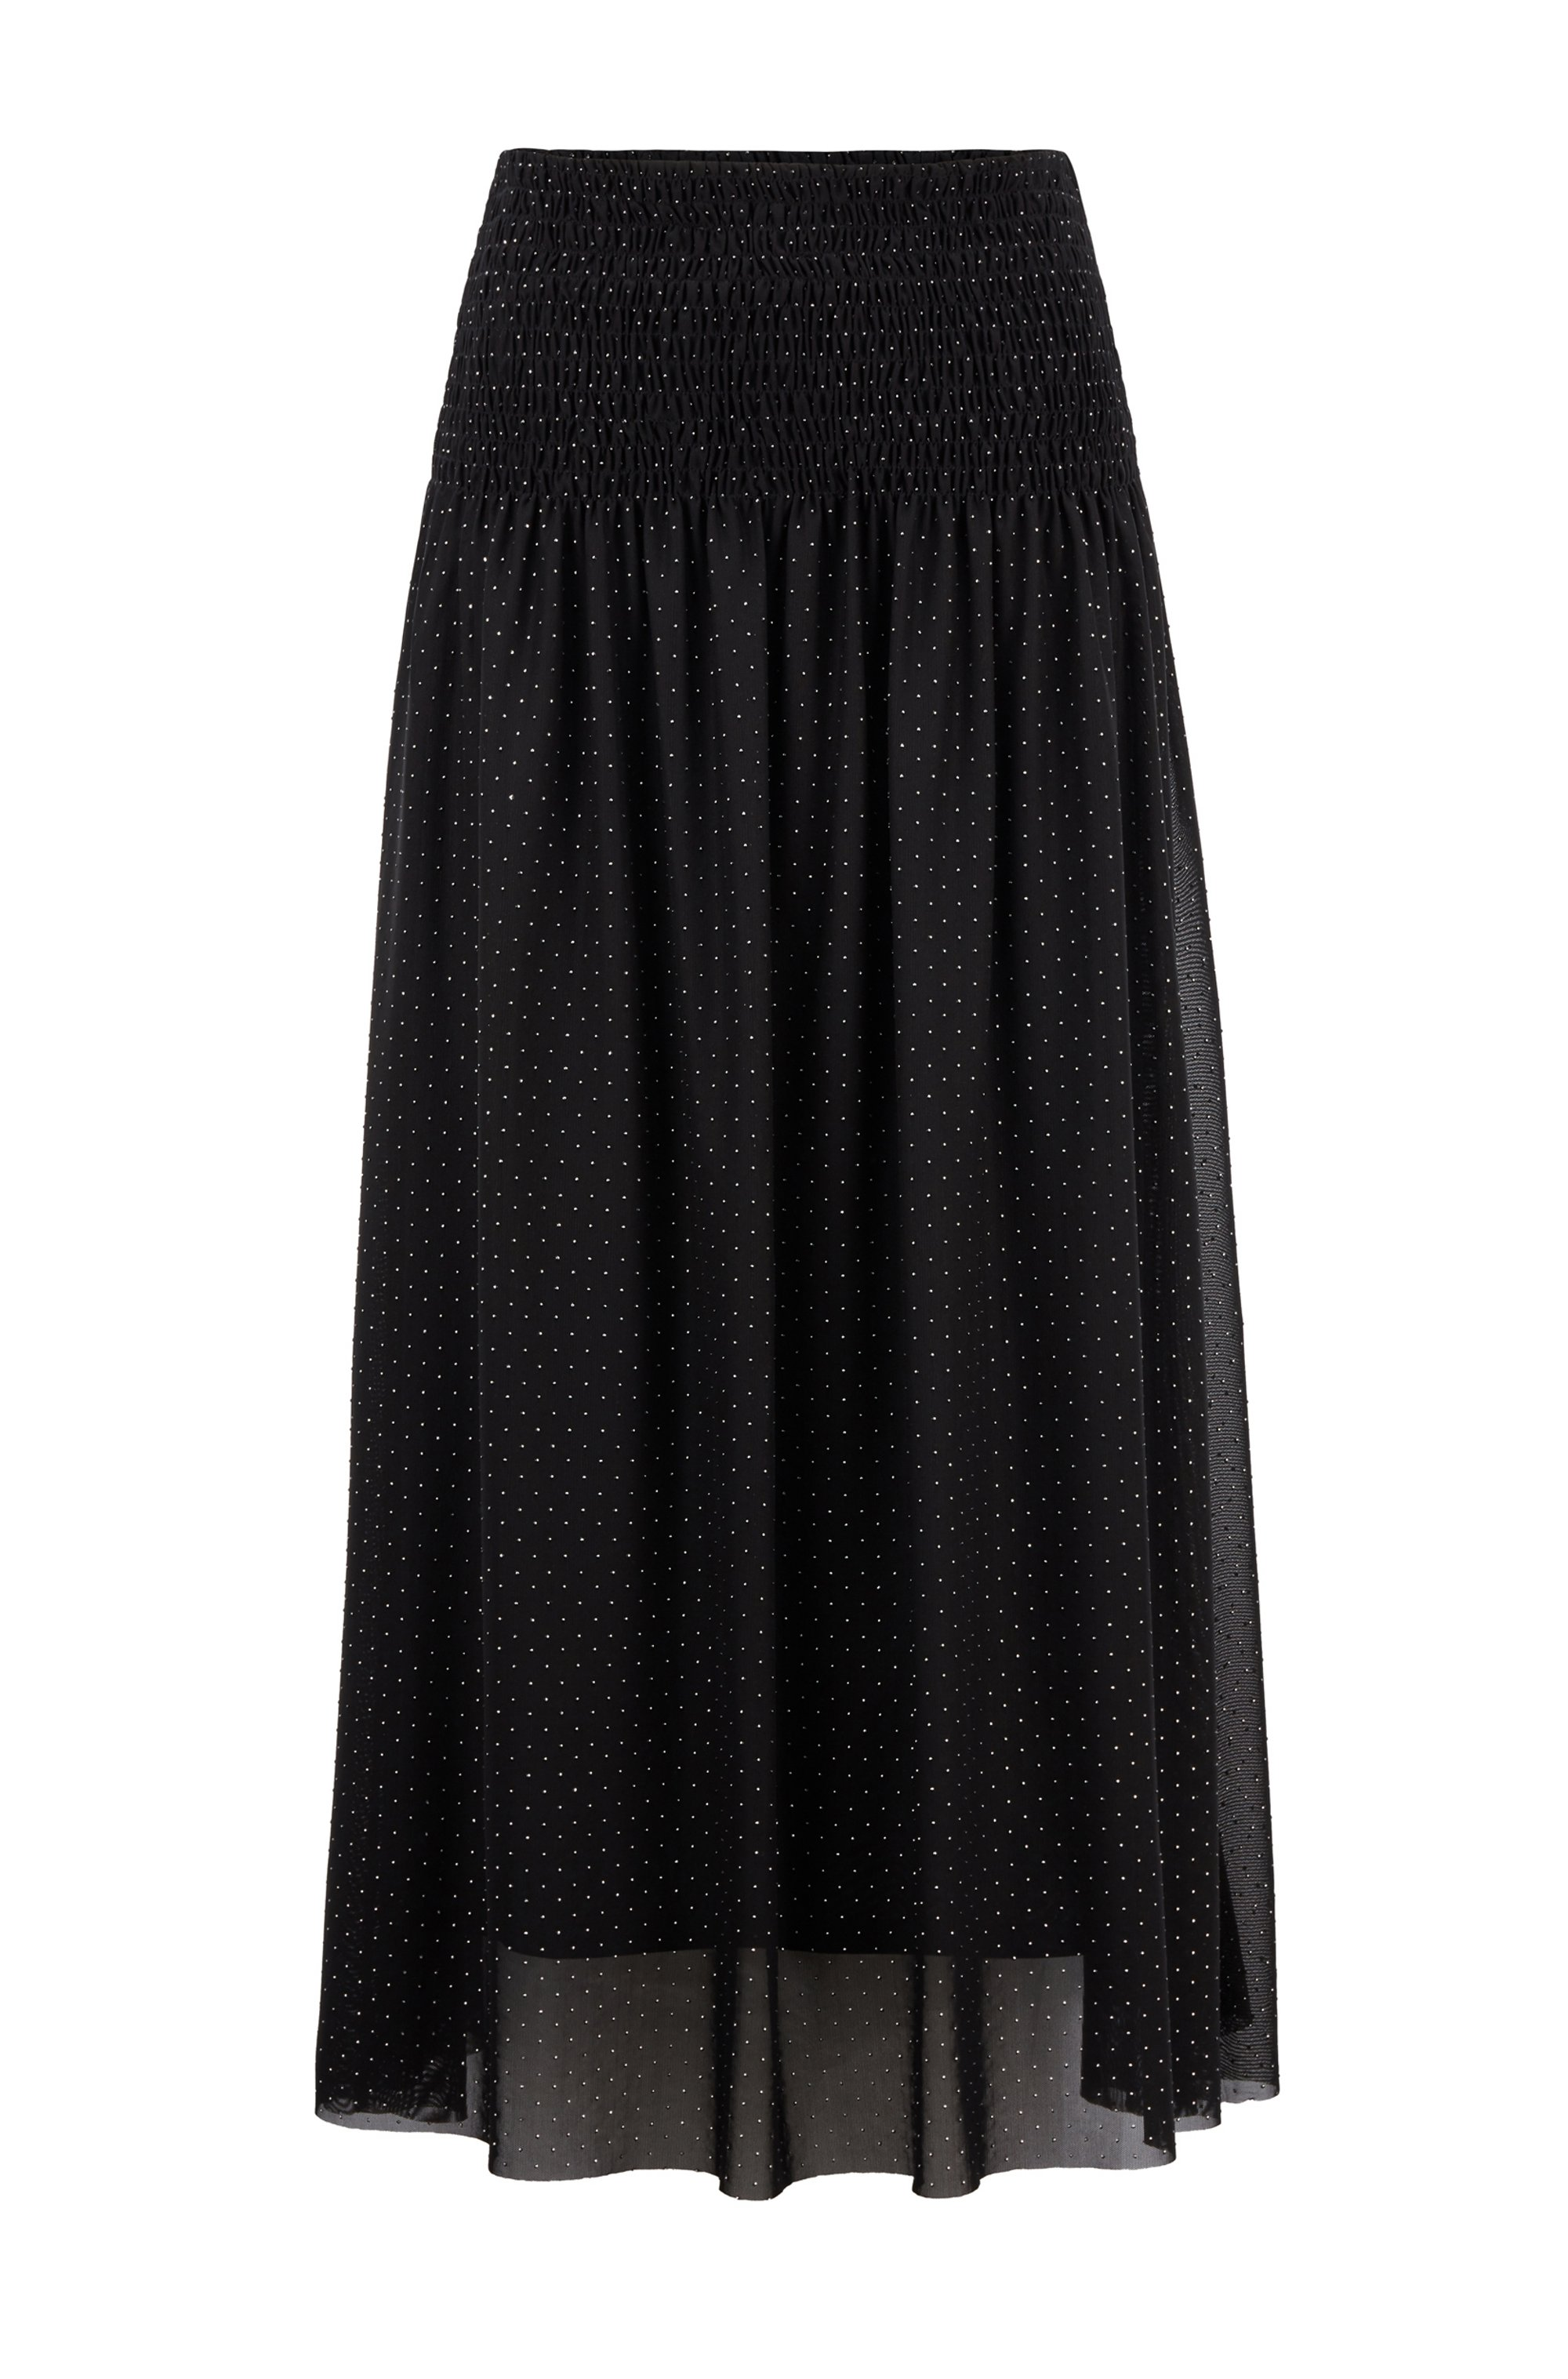 Smocked-waist skirt in tulle with metallic dot print, Black